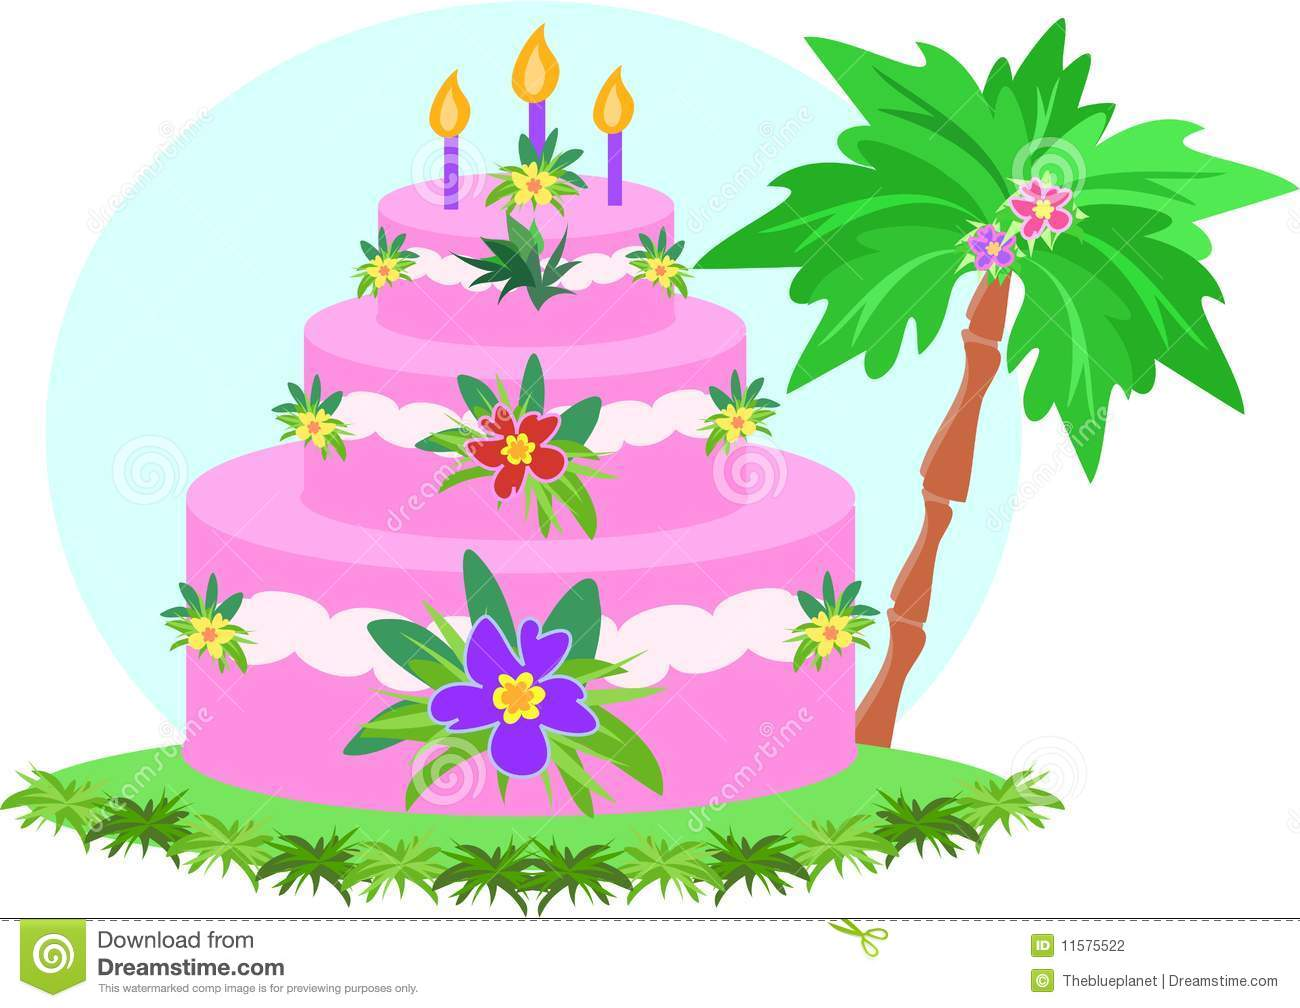 Tropical Birthday Cake Clipart